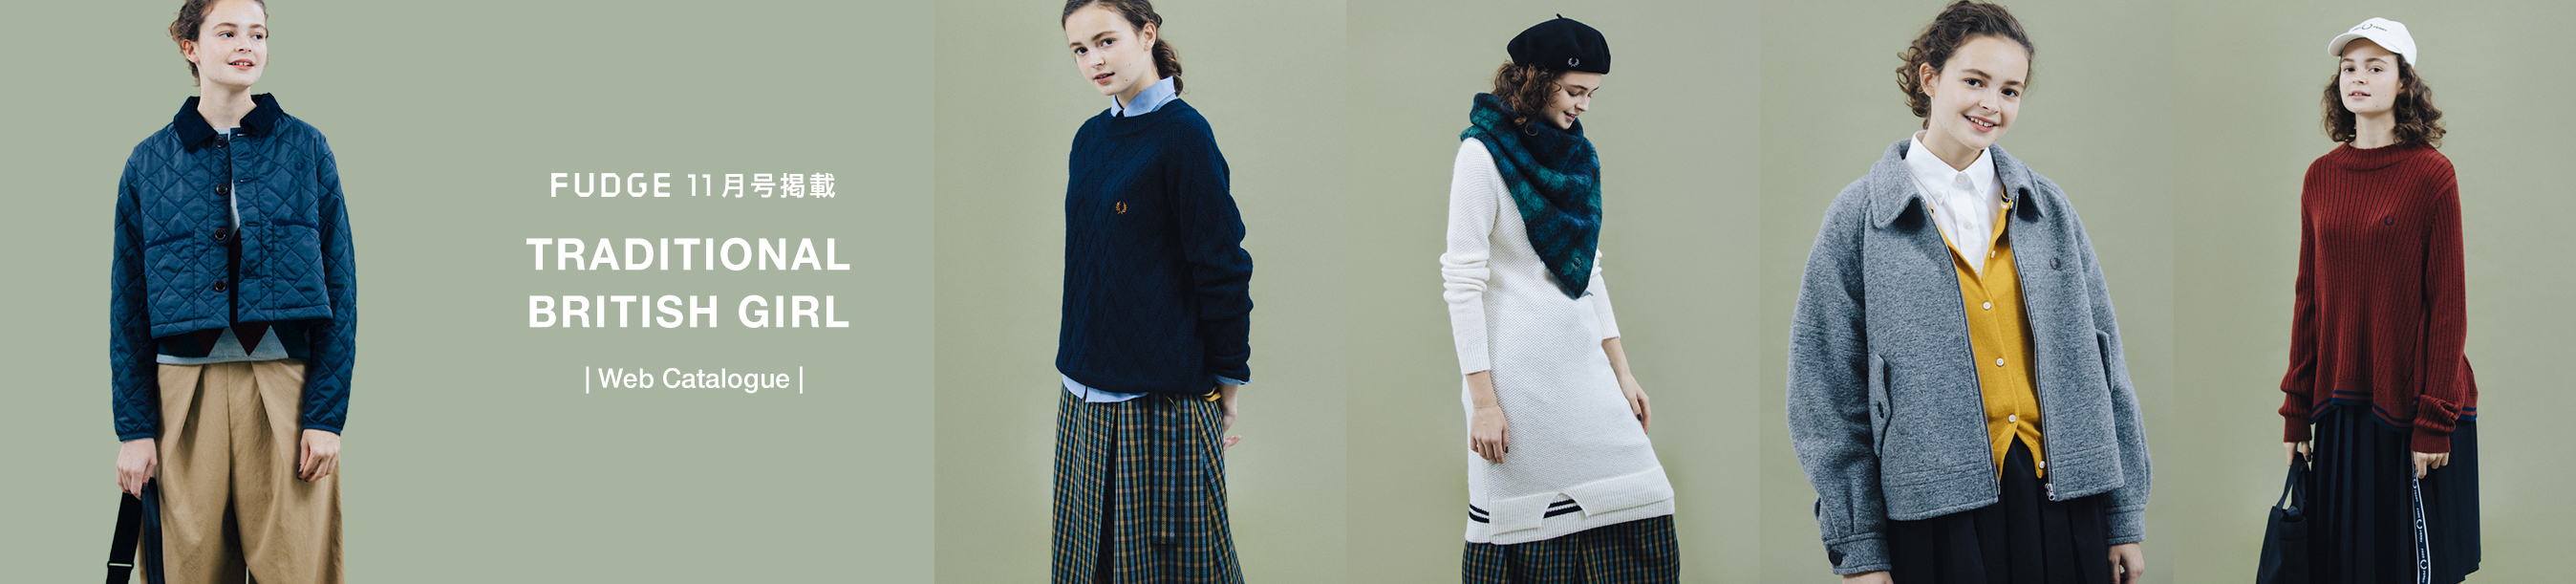 FUDGE x FRED PERRY 2019 11月